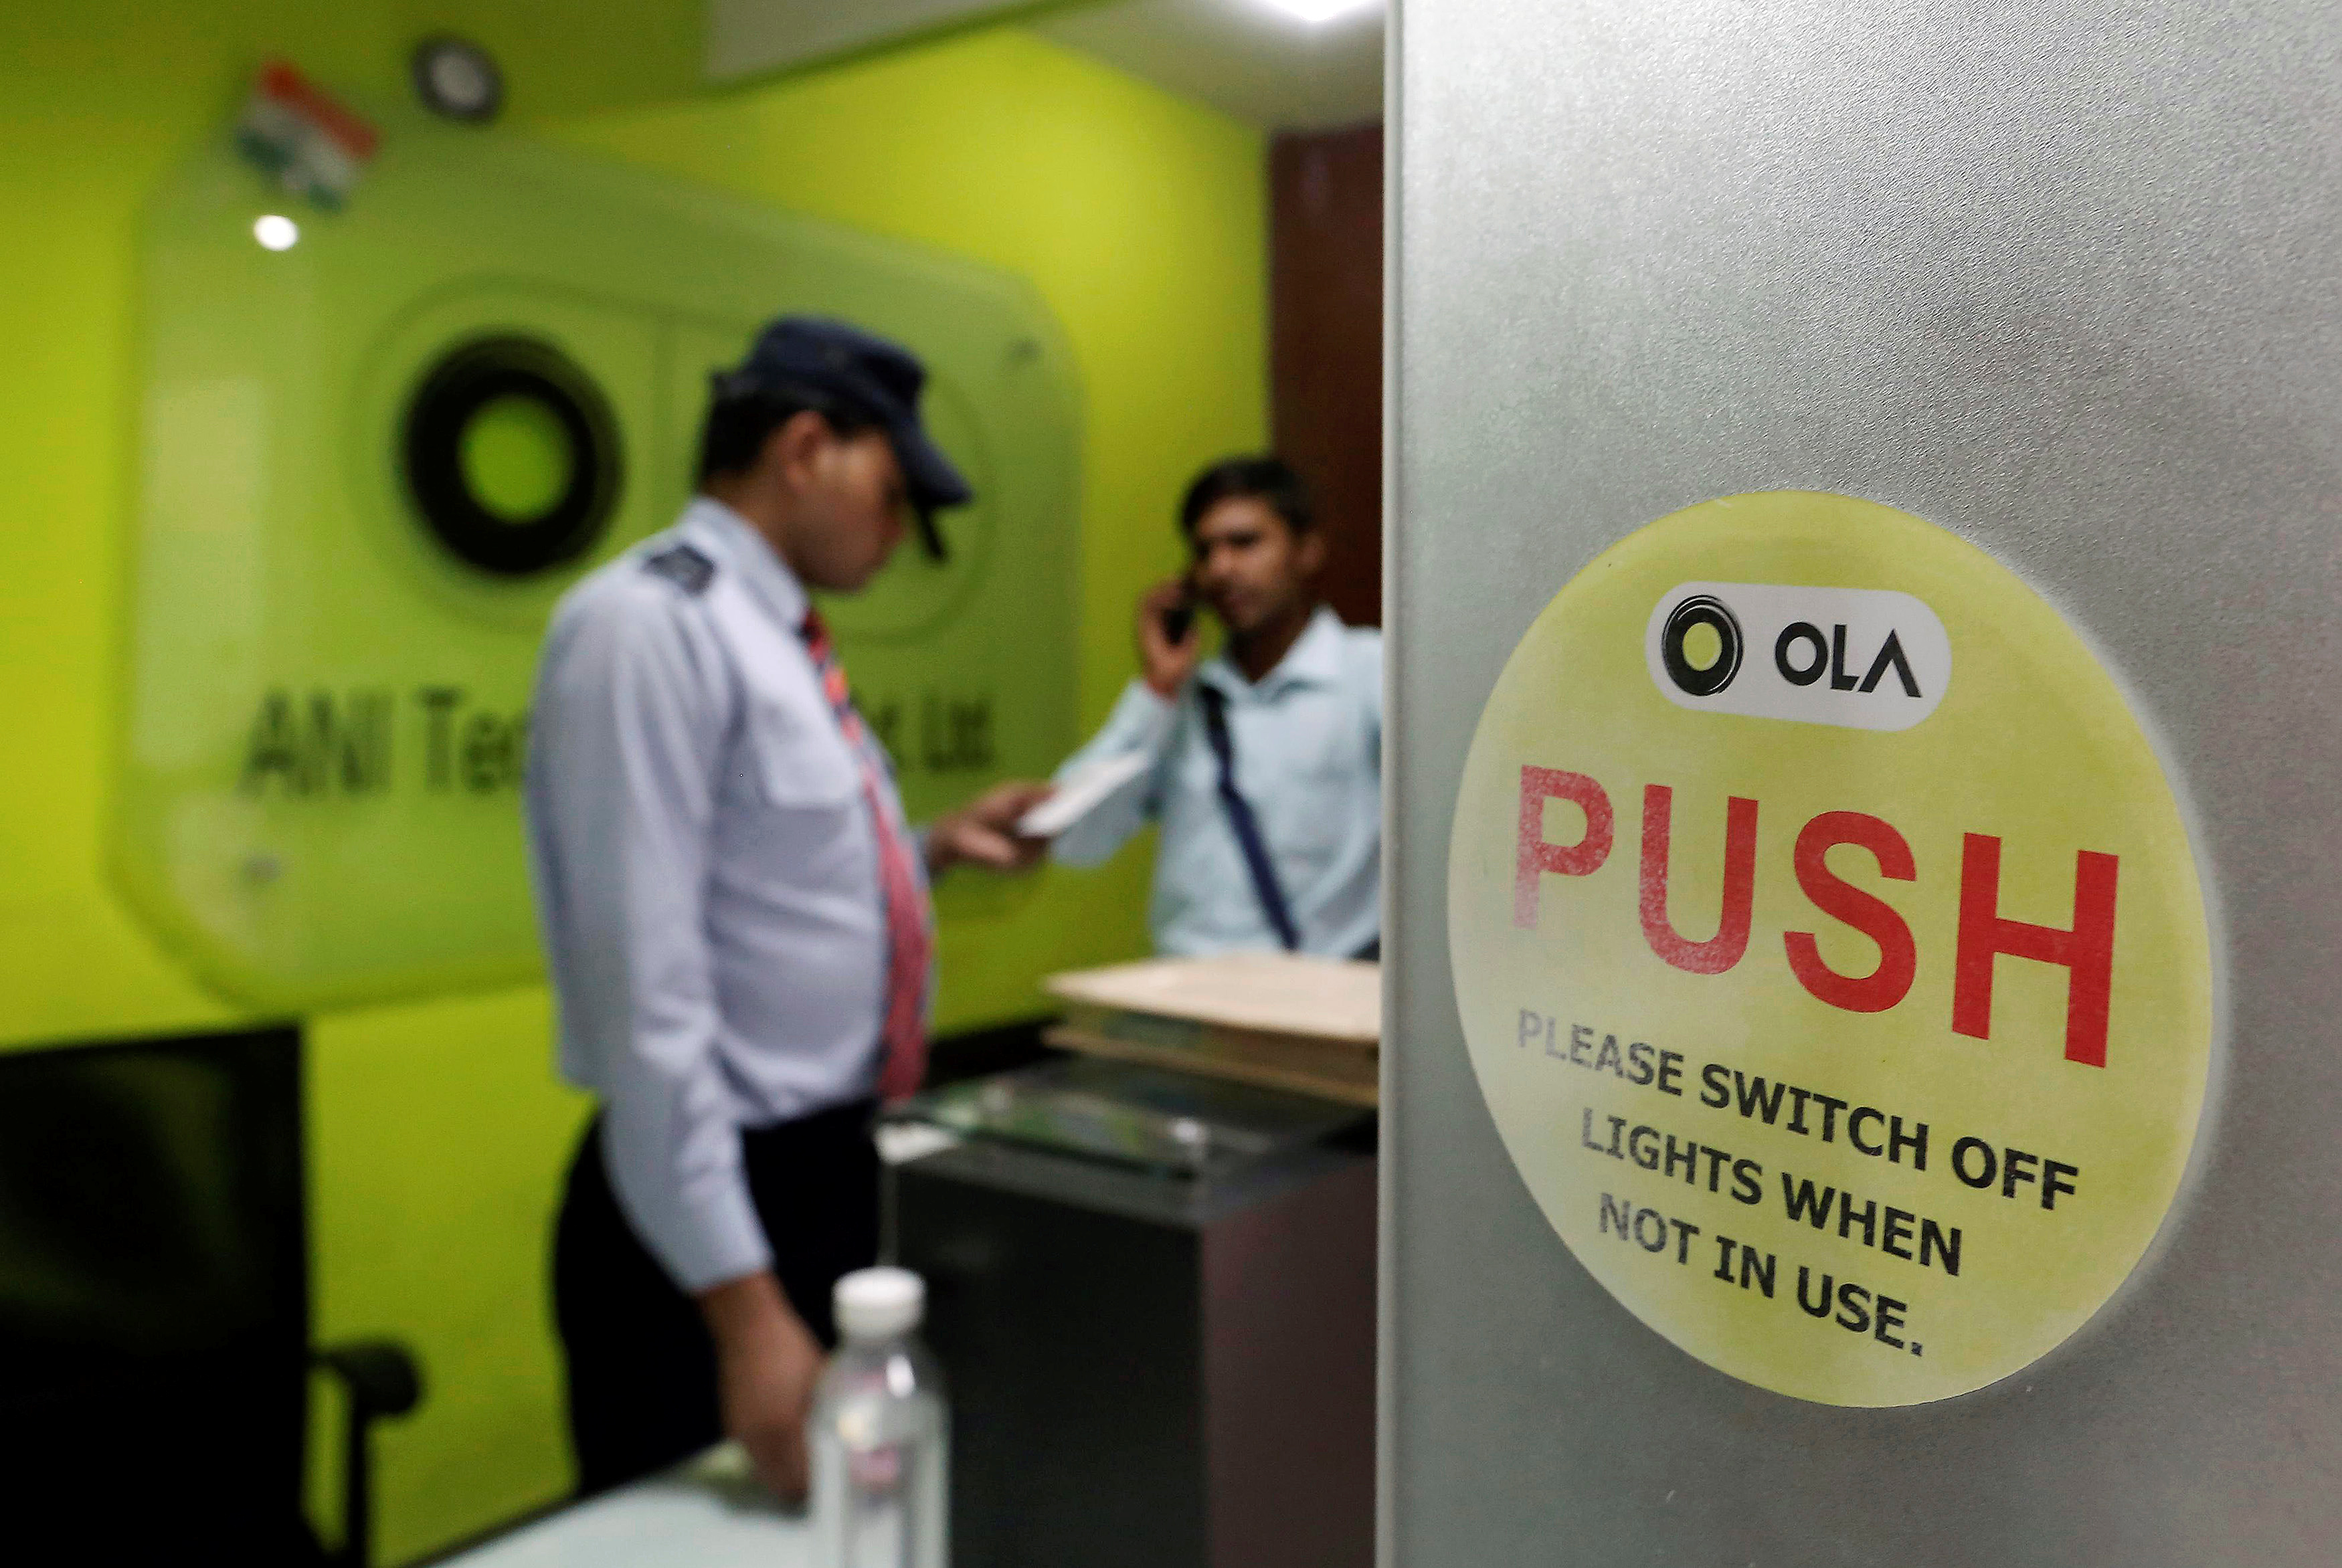 An employee speaks over his phone as a private security guard looks on at the front desk inside the office of Ola cab service in Gurugram, previously known as Gurgaon, on the outskirts of New Delhi, India, April 20, 2016. REUTERS/Anindito Mukherjee/Files